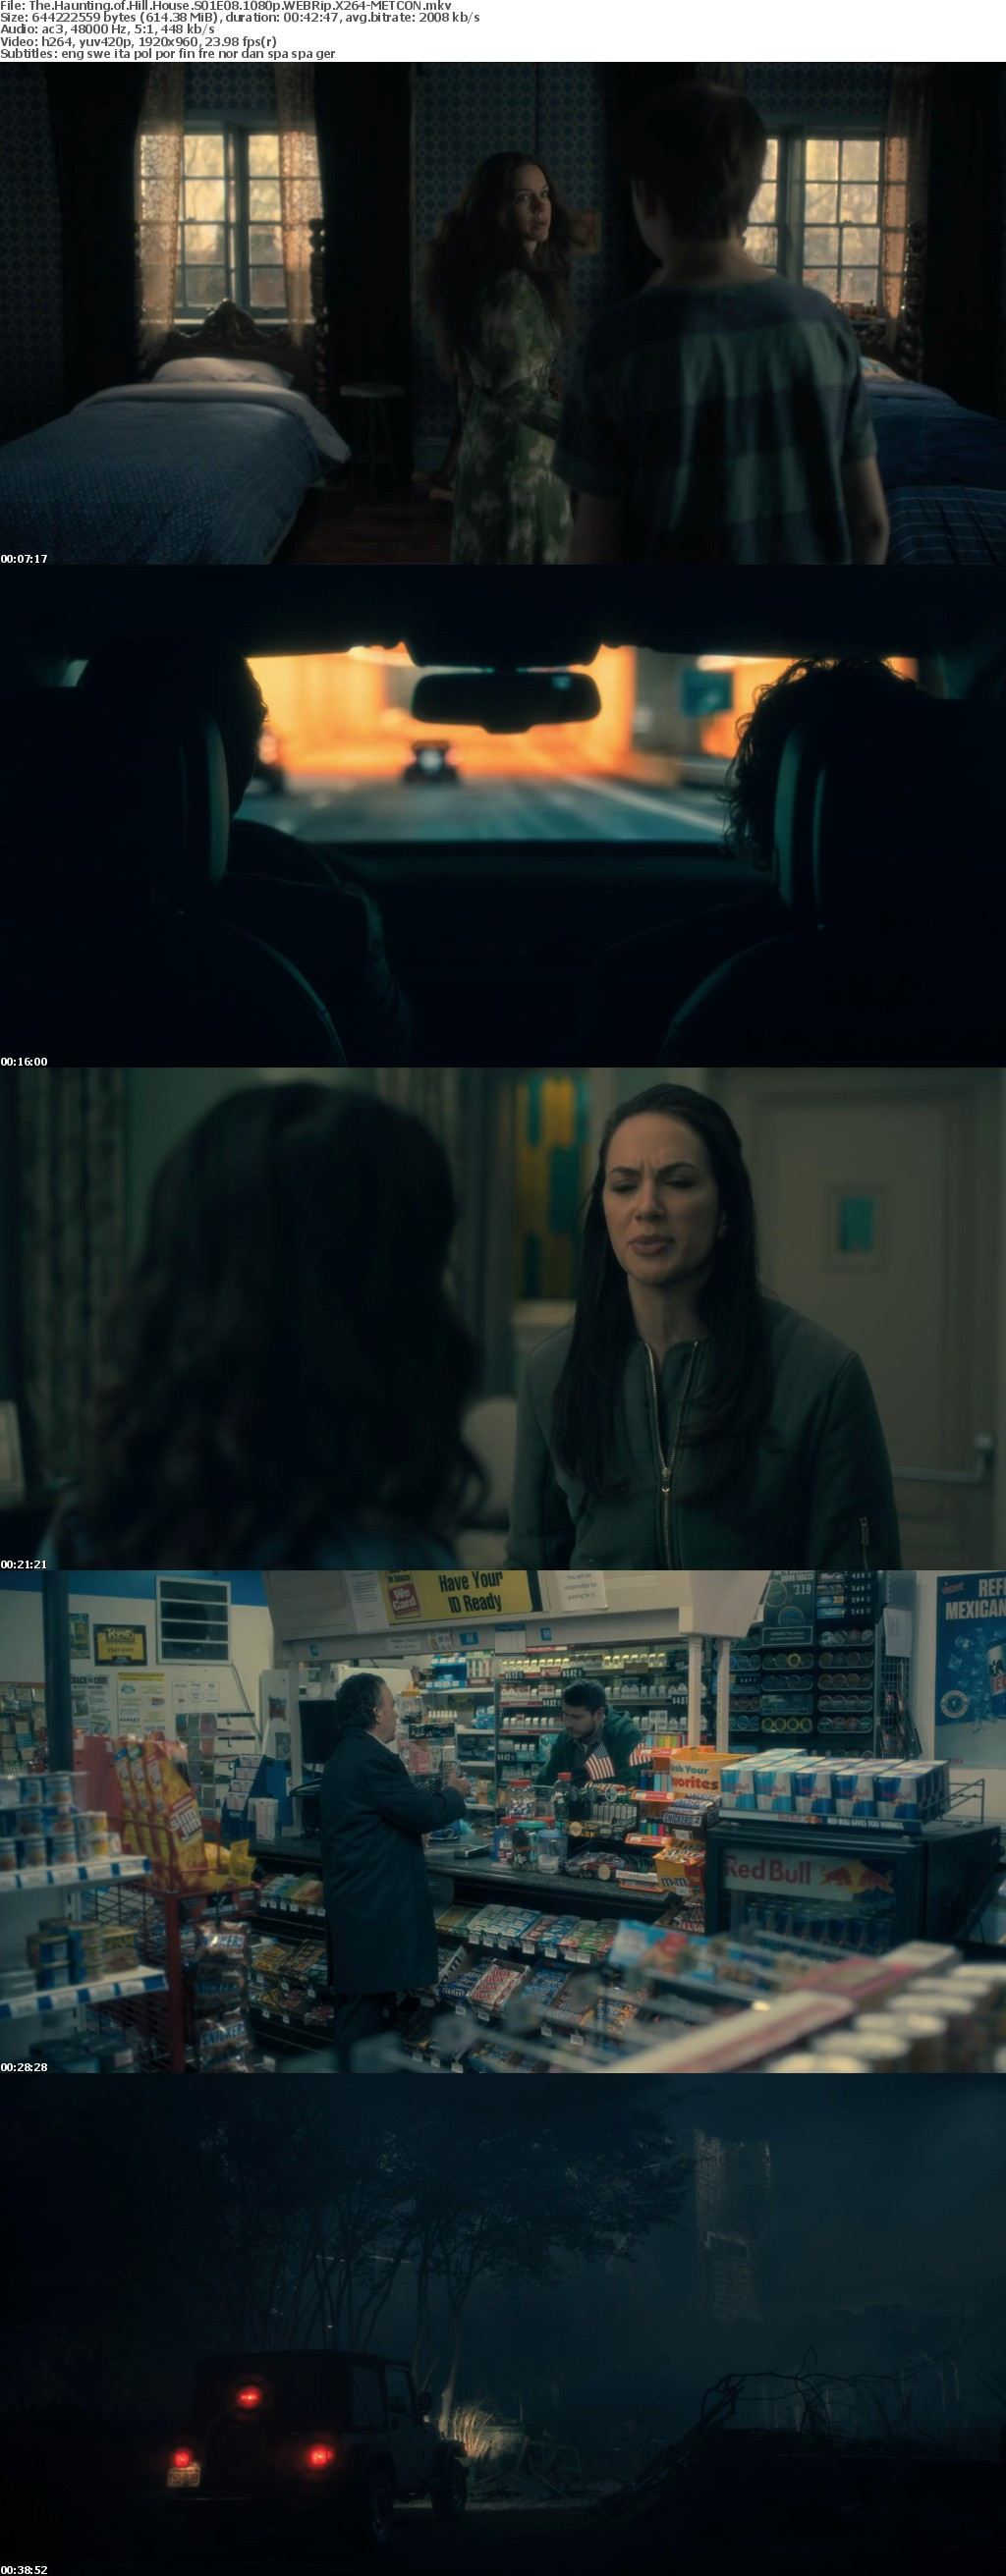 The Haunting of Hill House S01E08 1080p WEBRip X264-METCON